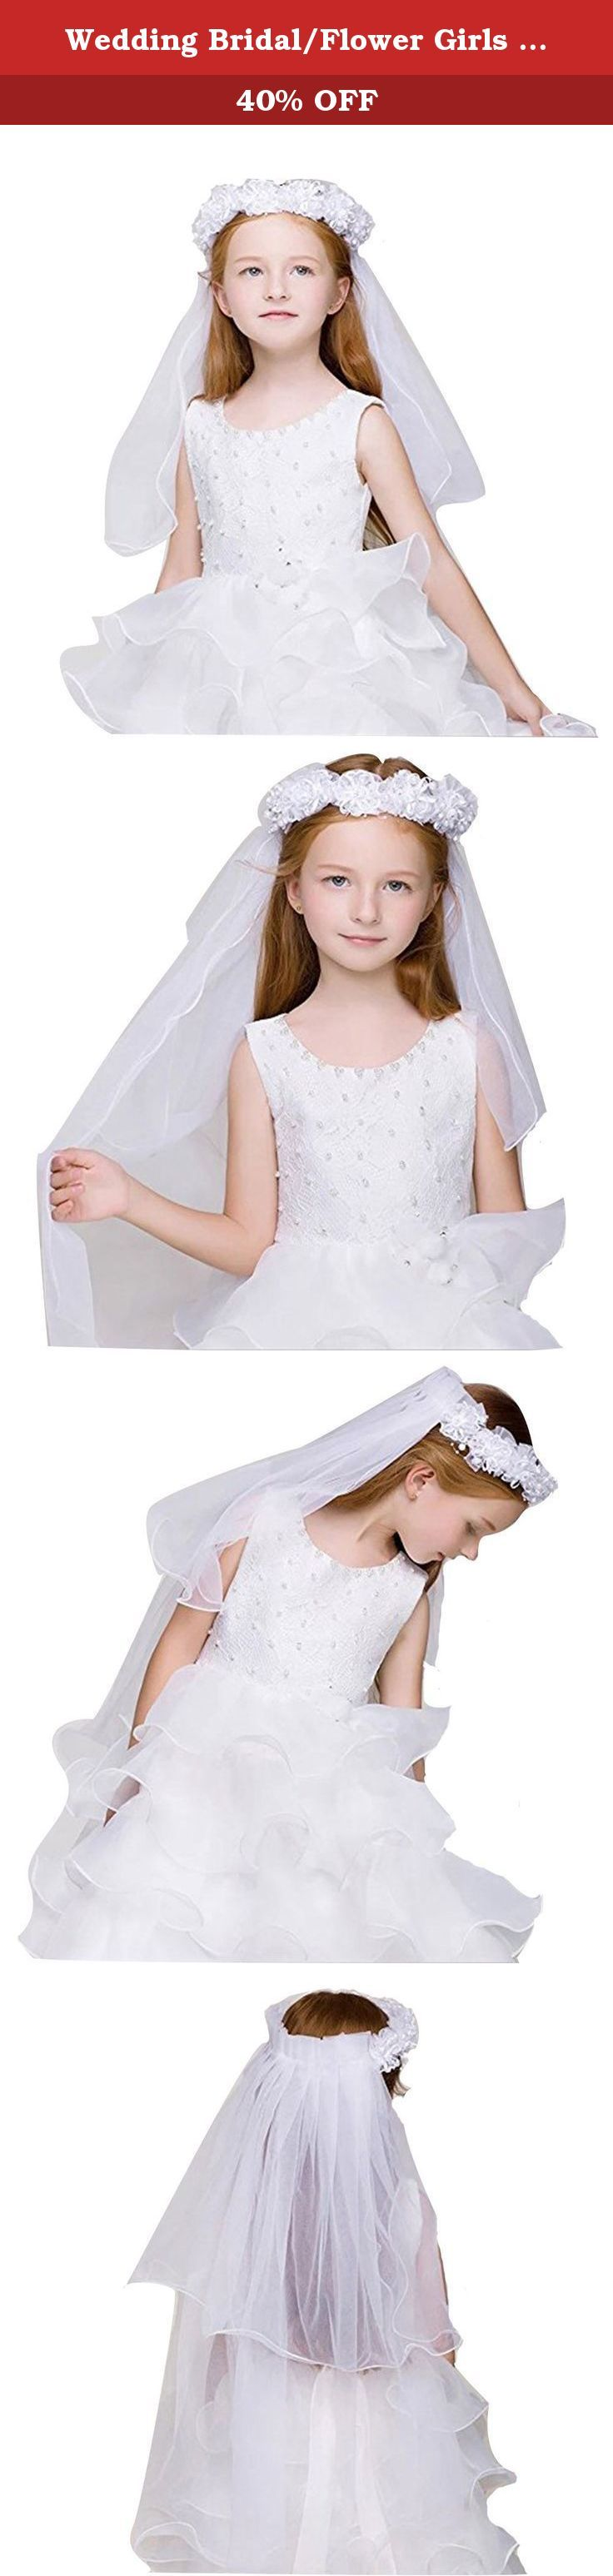 Wedding Bridal/Flower Girls Short Head Veil Headband Kids for Baptism Communion. Package: Polybag Item Location: CA USA Shipping: USPS STANDARD POST (2-5 WORKING DAYS DOMESTIC DELIVERY) .